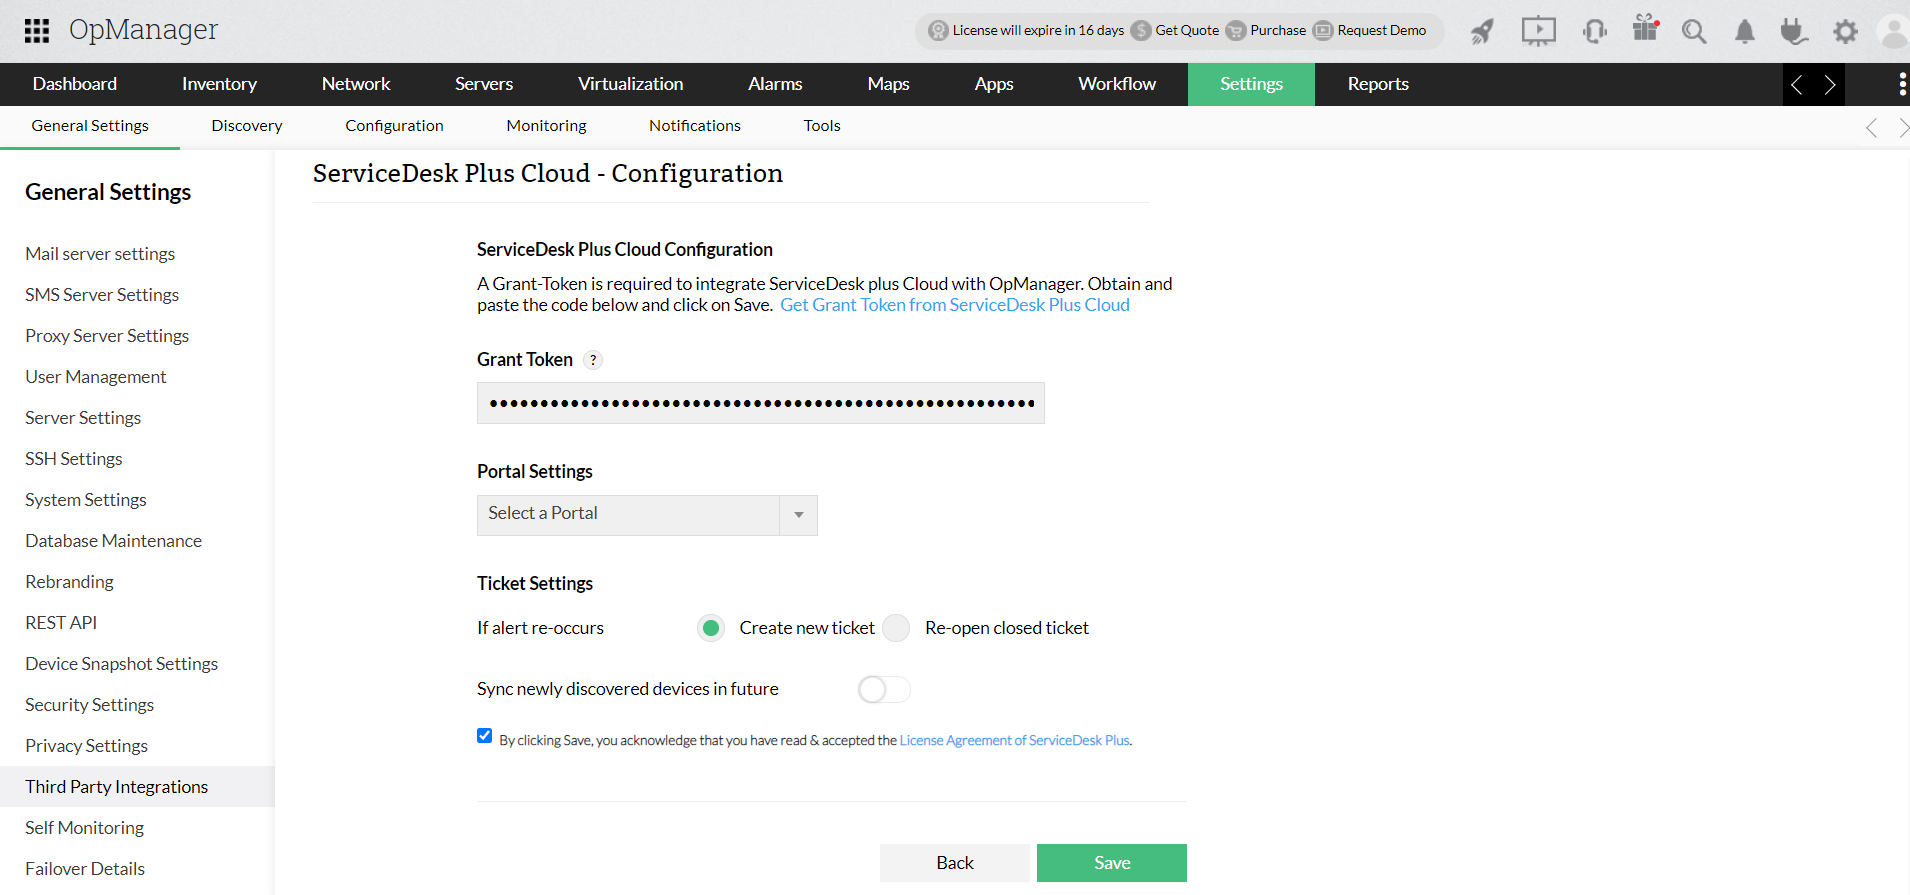 ServiceDesk Plus (SDP) Cloud Integration with OpManager - ManageEngine